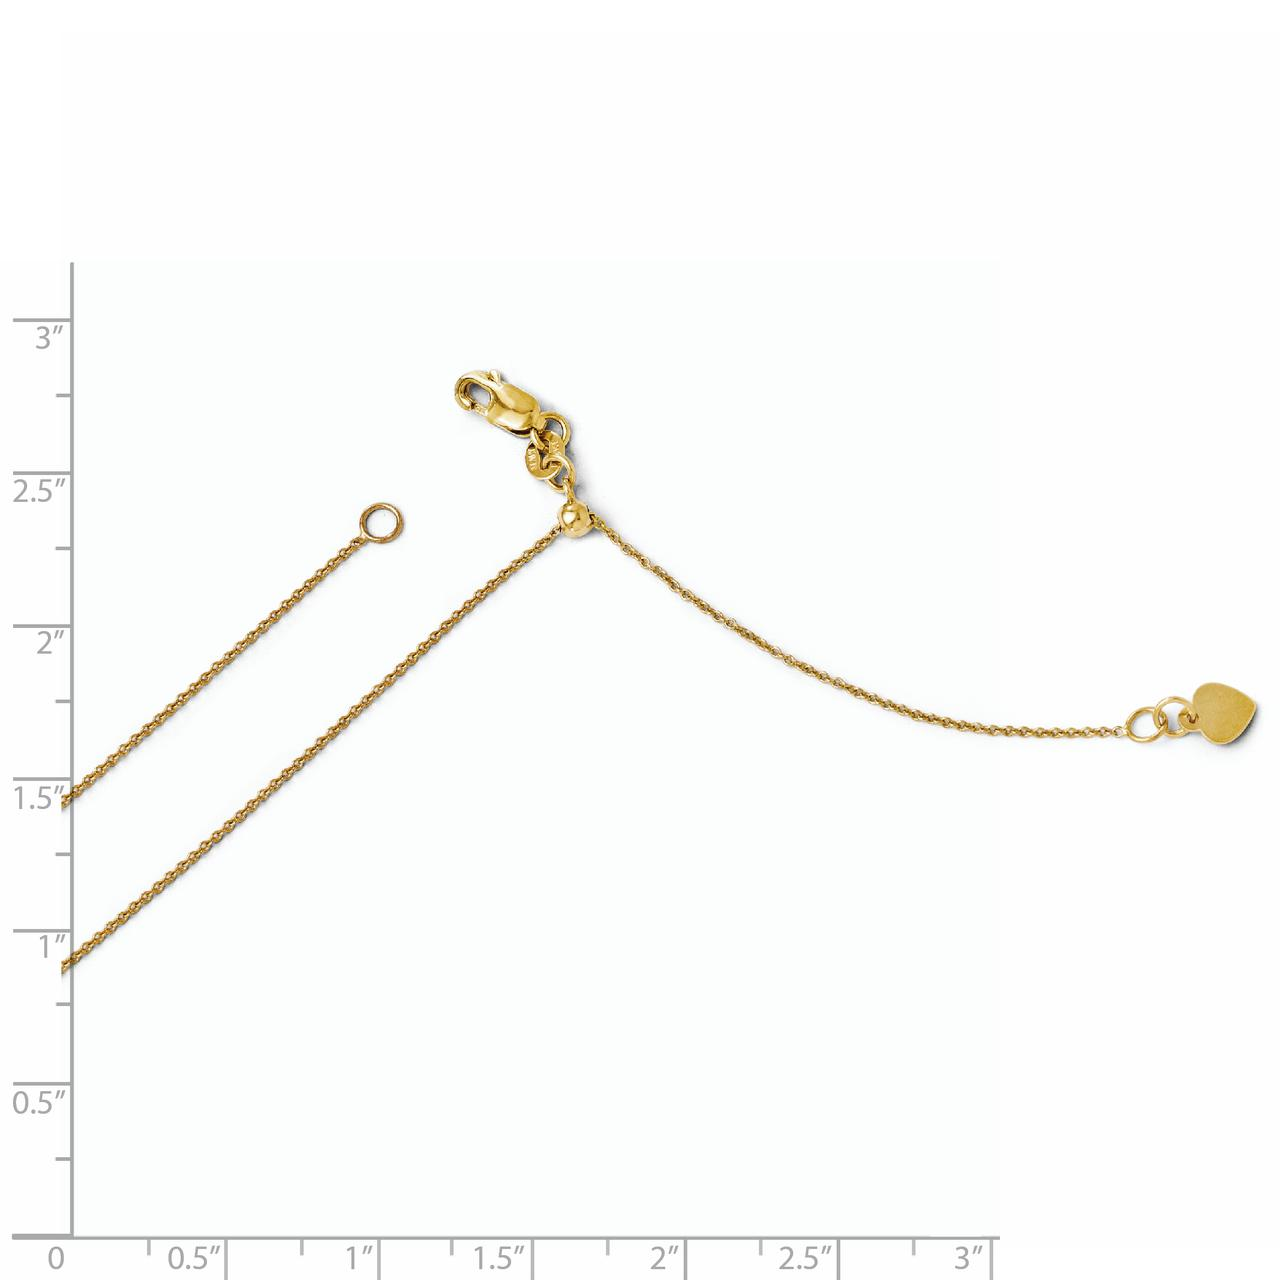 14k Yellow Gold .7 Mm Round Link Cable Adjustable Chain Necklace 22 Inch Pendant Charm Fine Jewelry Gifts For Women For Her - image 1 of 2